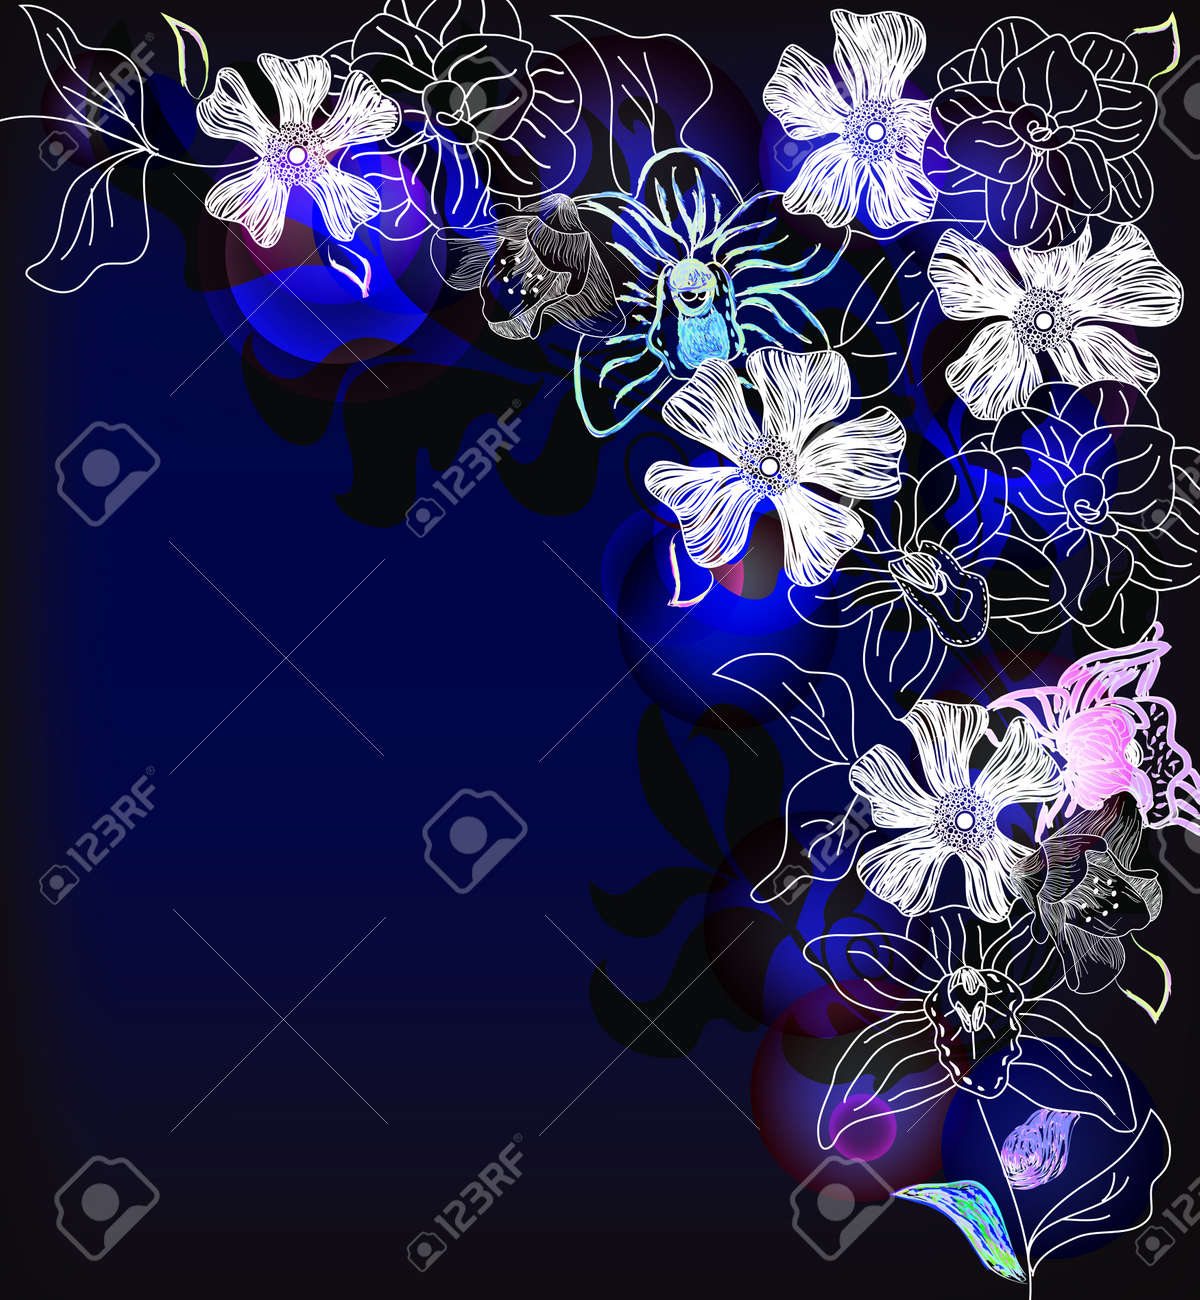 wonderful abstract frame with different kinds of flowers Stock Vector - 12352577